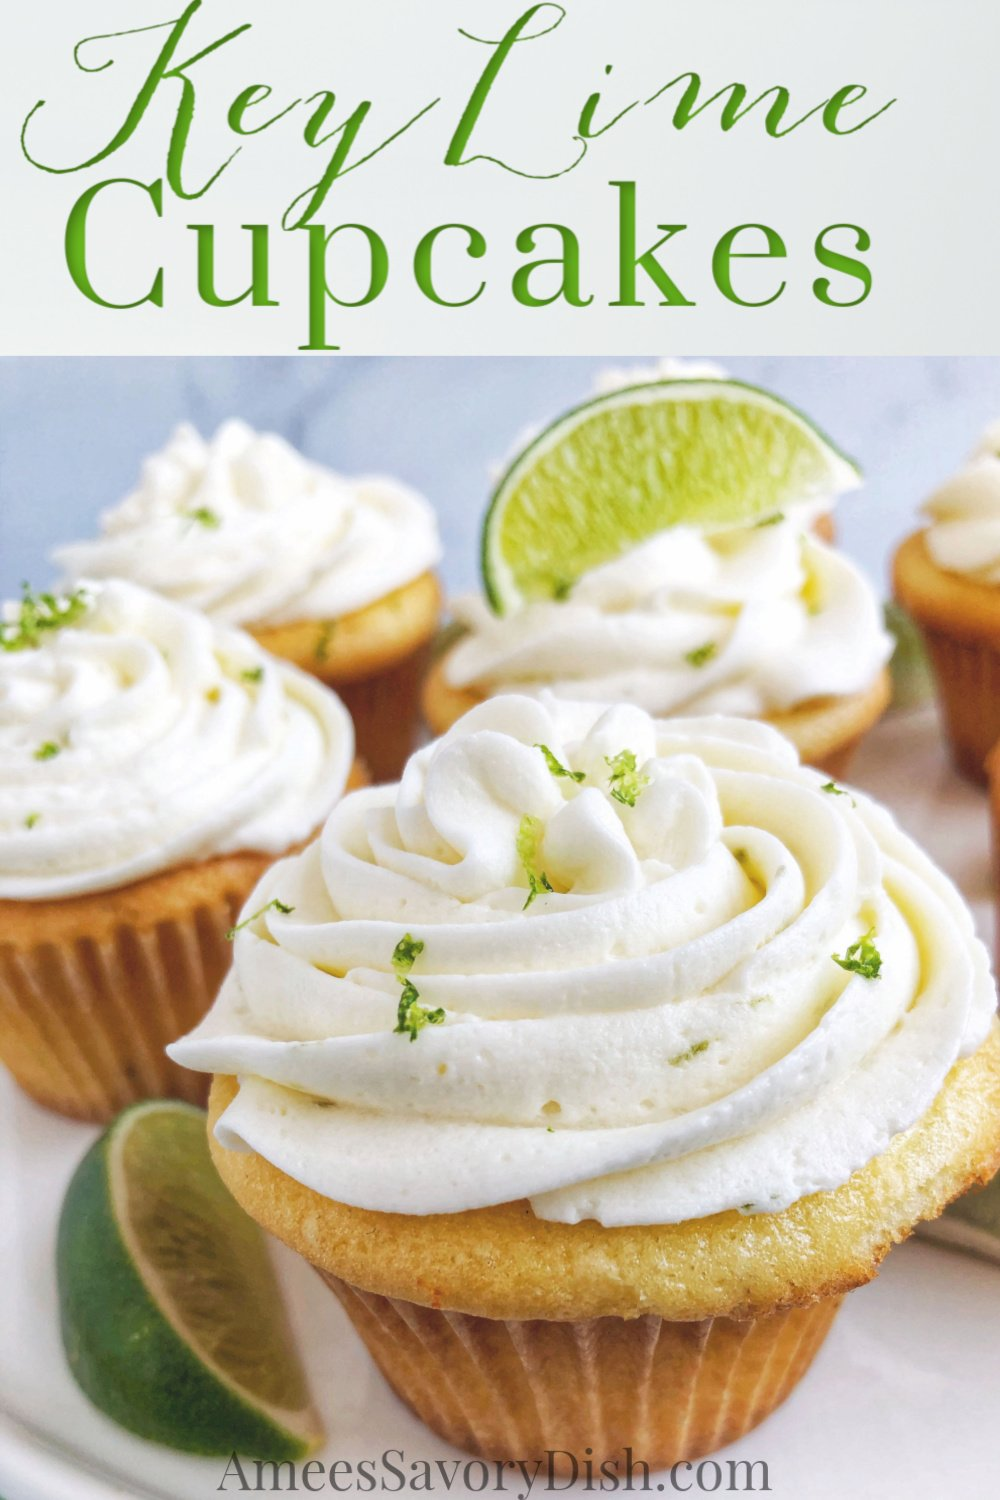 These Key Lime Cupcakes are a light buttery cupcake with key lime filling topped with a rich and delicious key lime buttercream frosting.#cupcakes #keylimedesserts #cupcakerecipe #keylimecupcakes #buttercreamfrosting via @Ameessavorydish